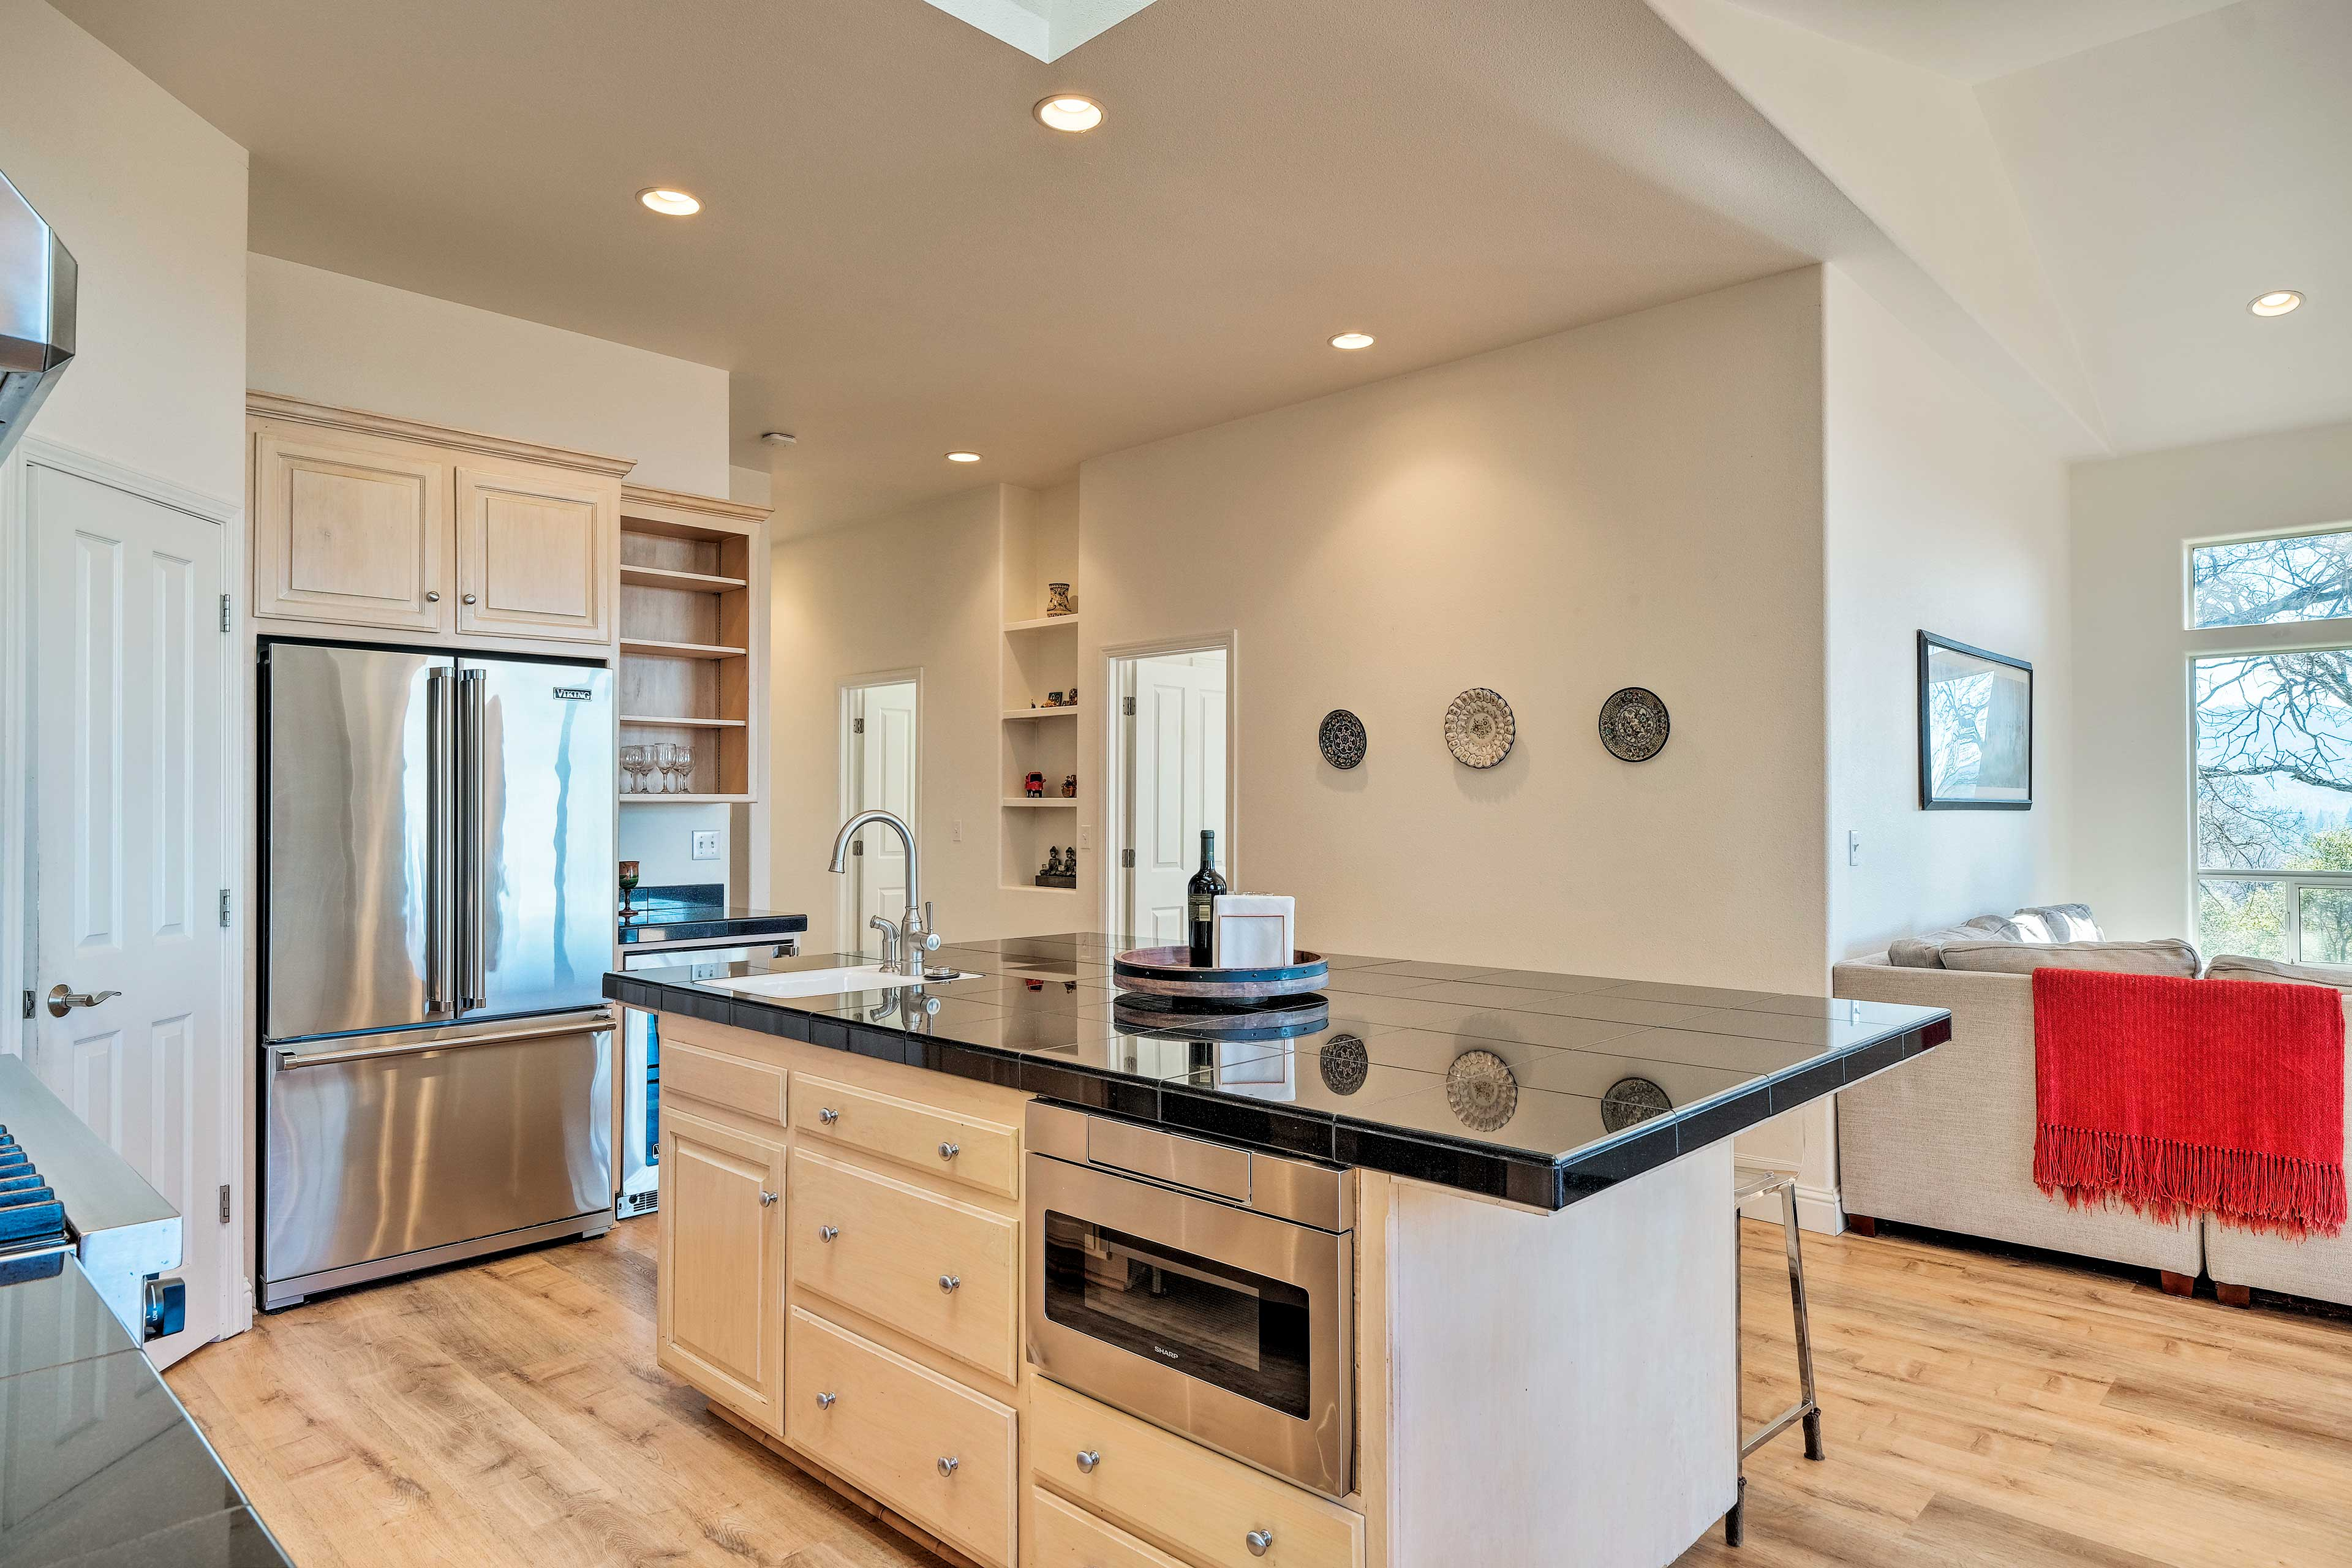 The kitchen area opens up seamlessly into the living room.